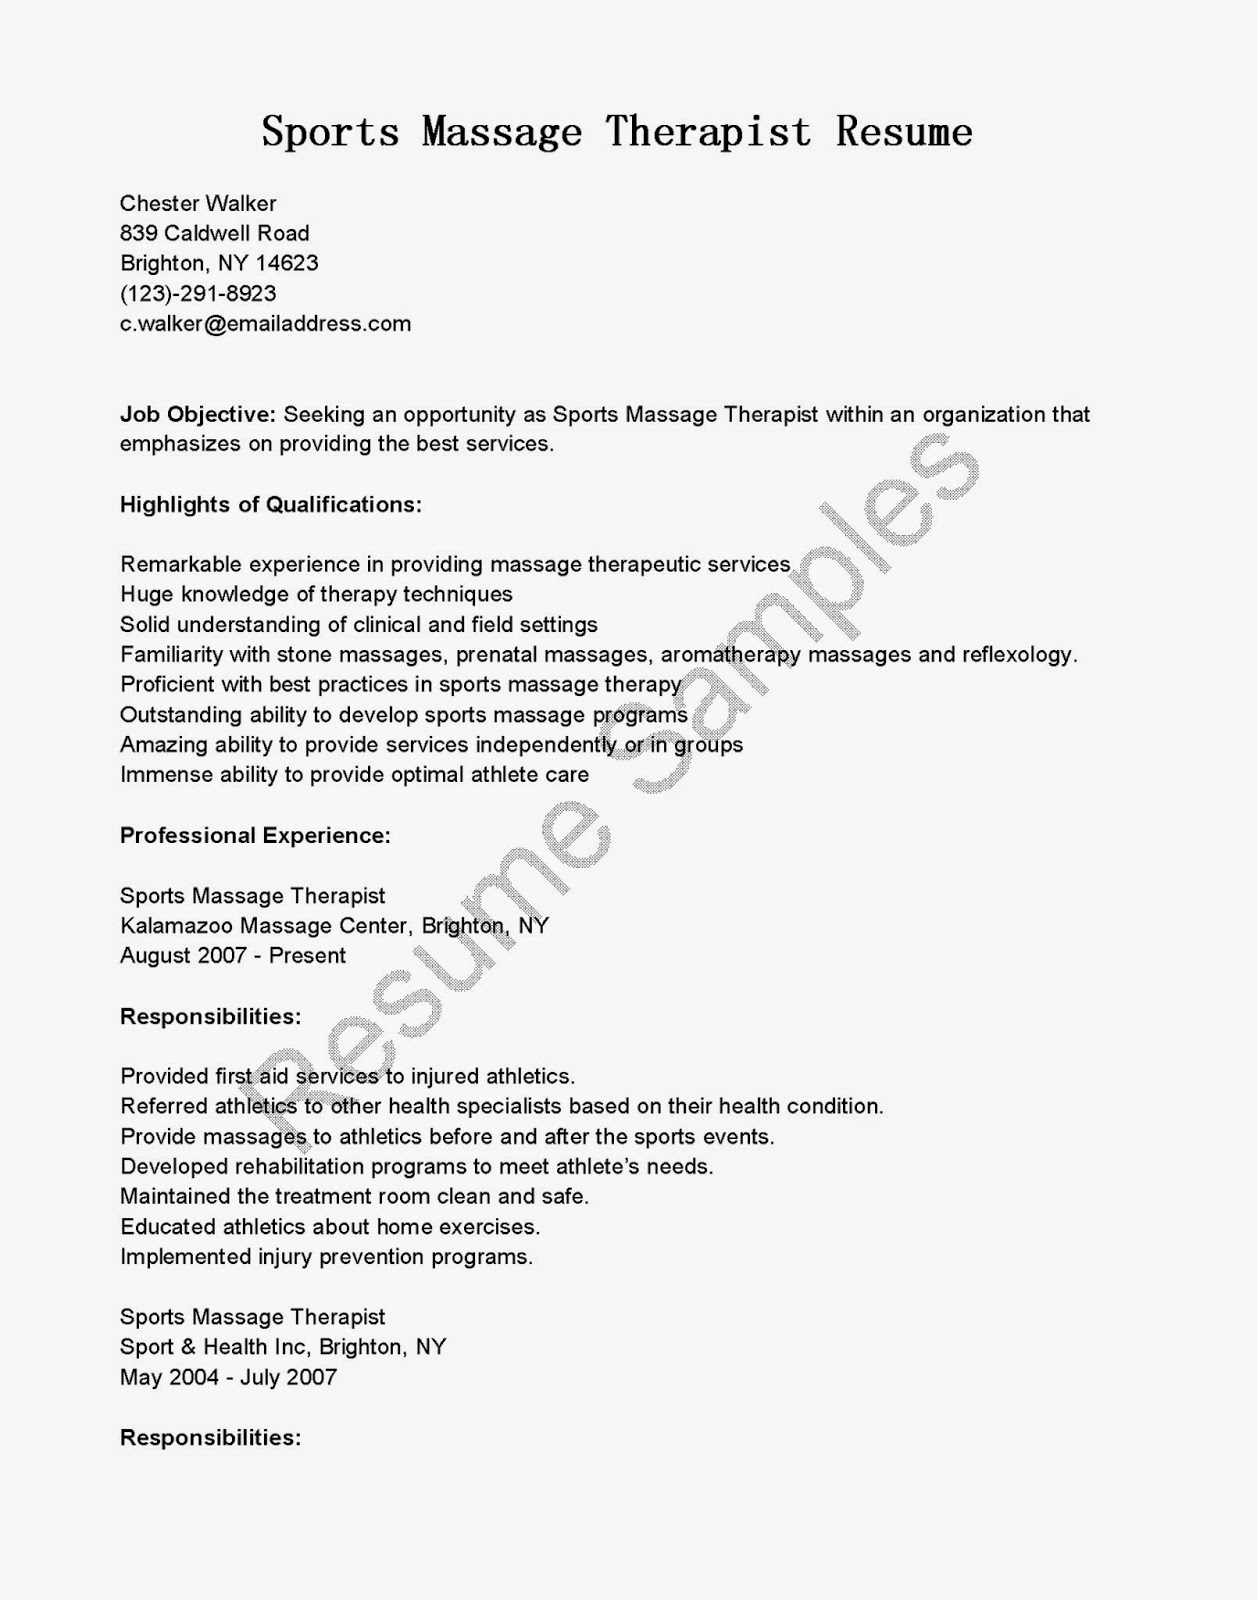 resume samples  sports massage therapist resume